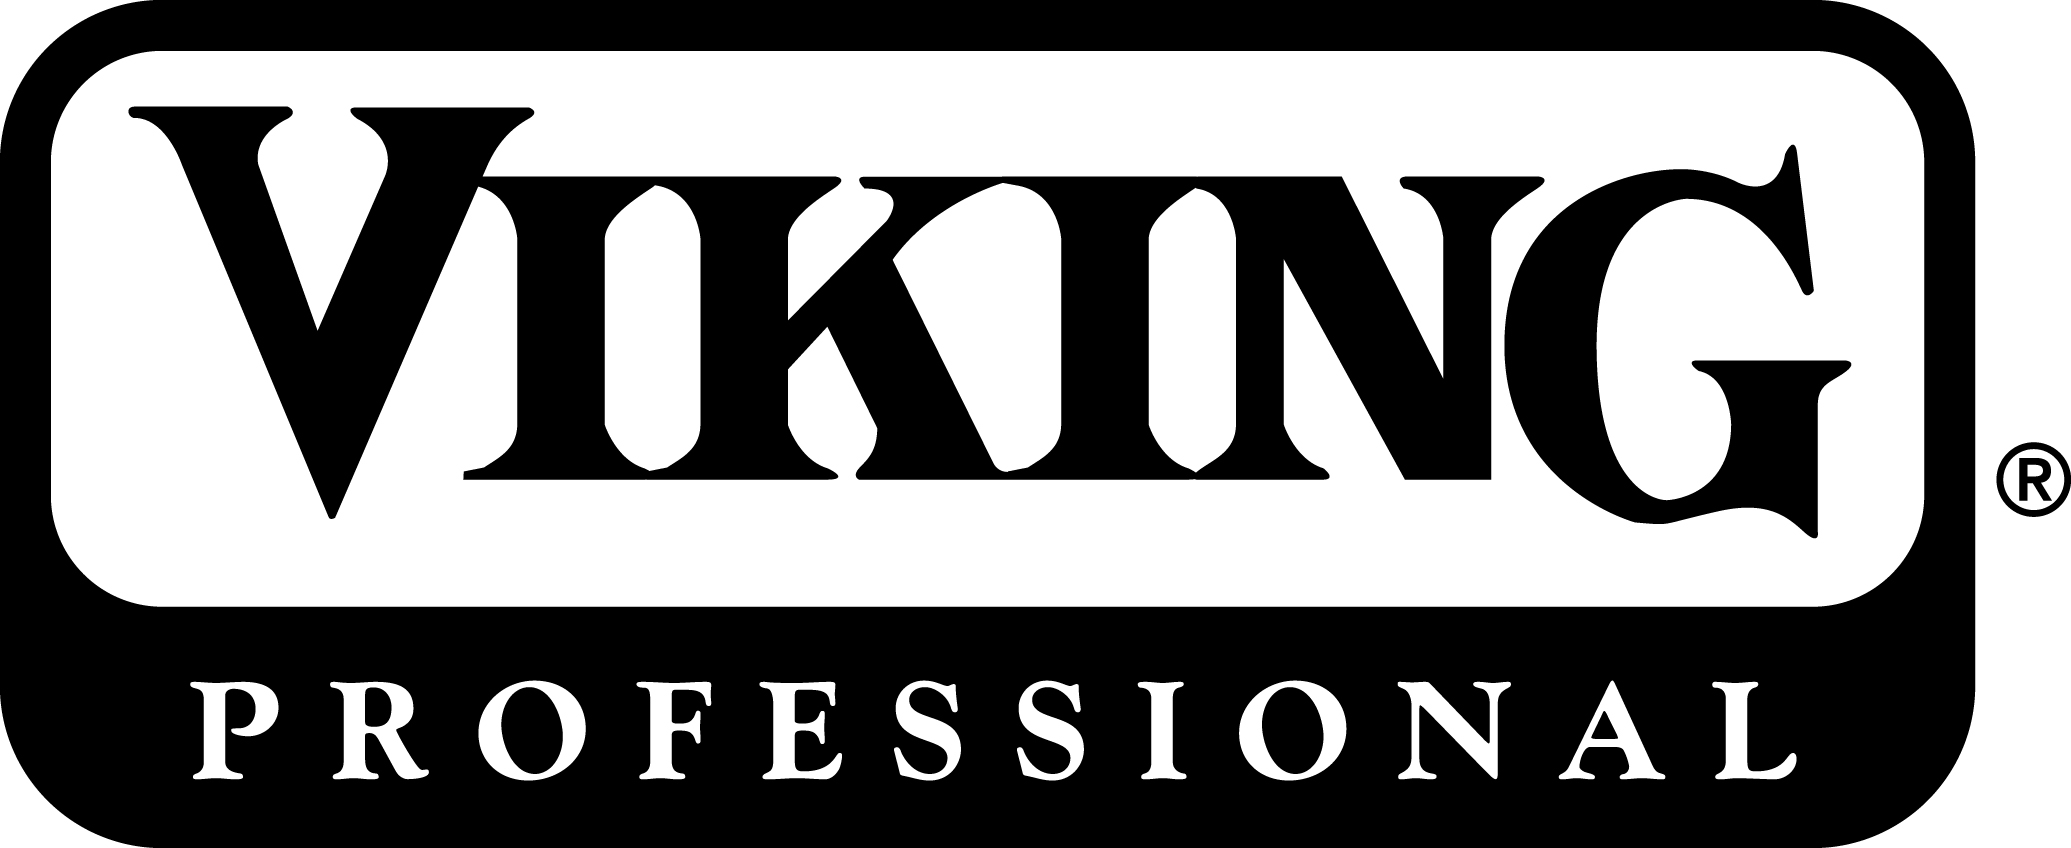 Viking Fridge Maintenance, Kenmore Fridge Repair